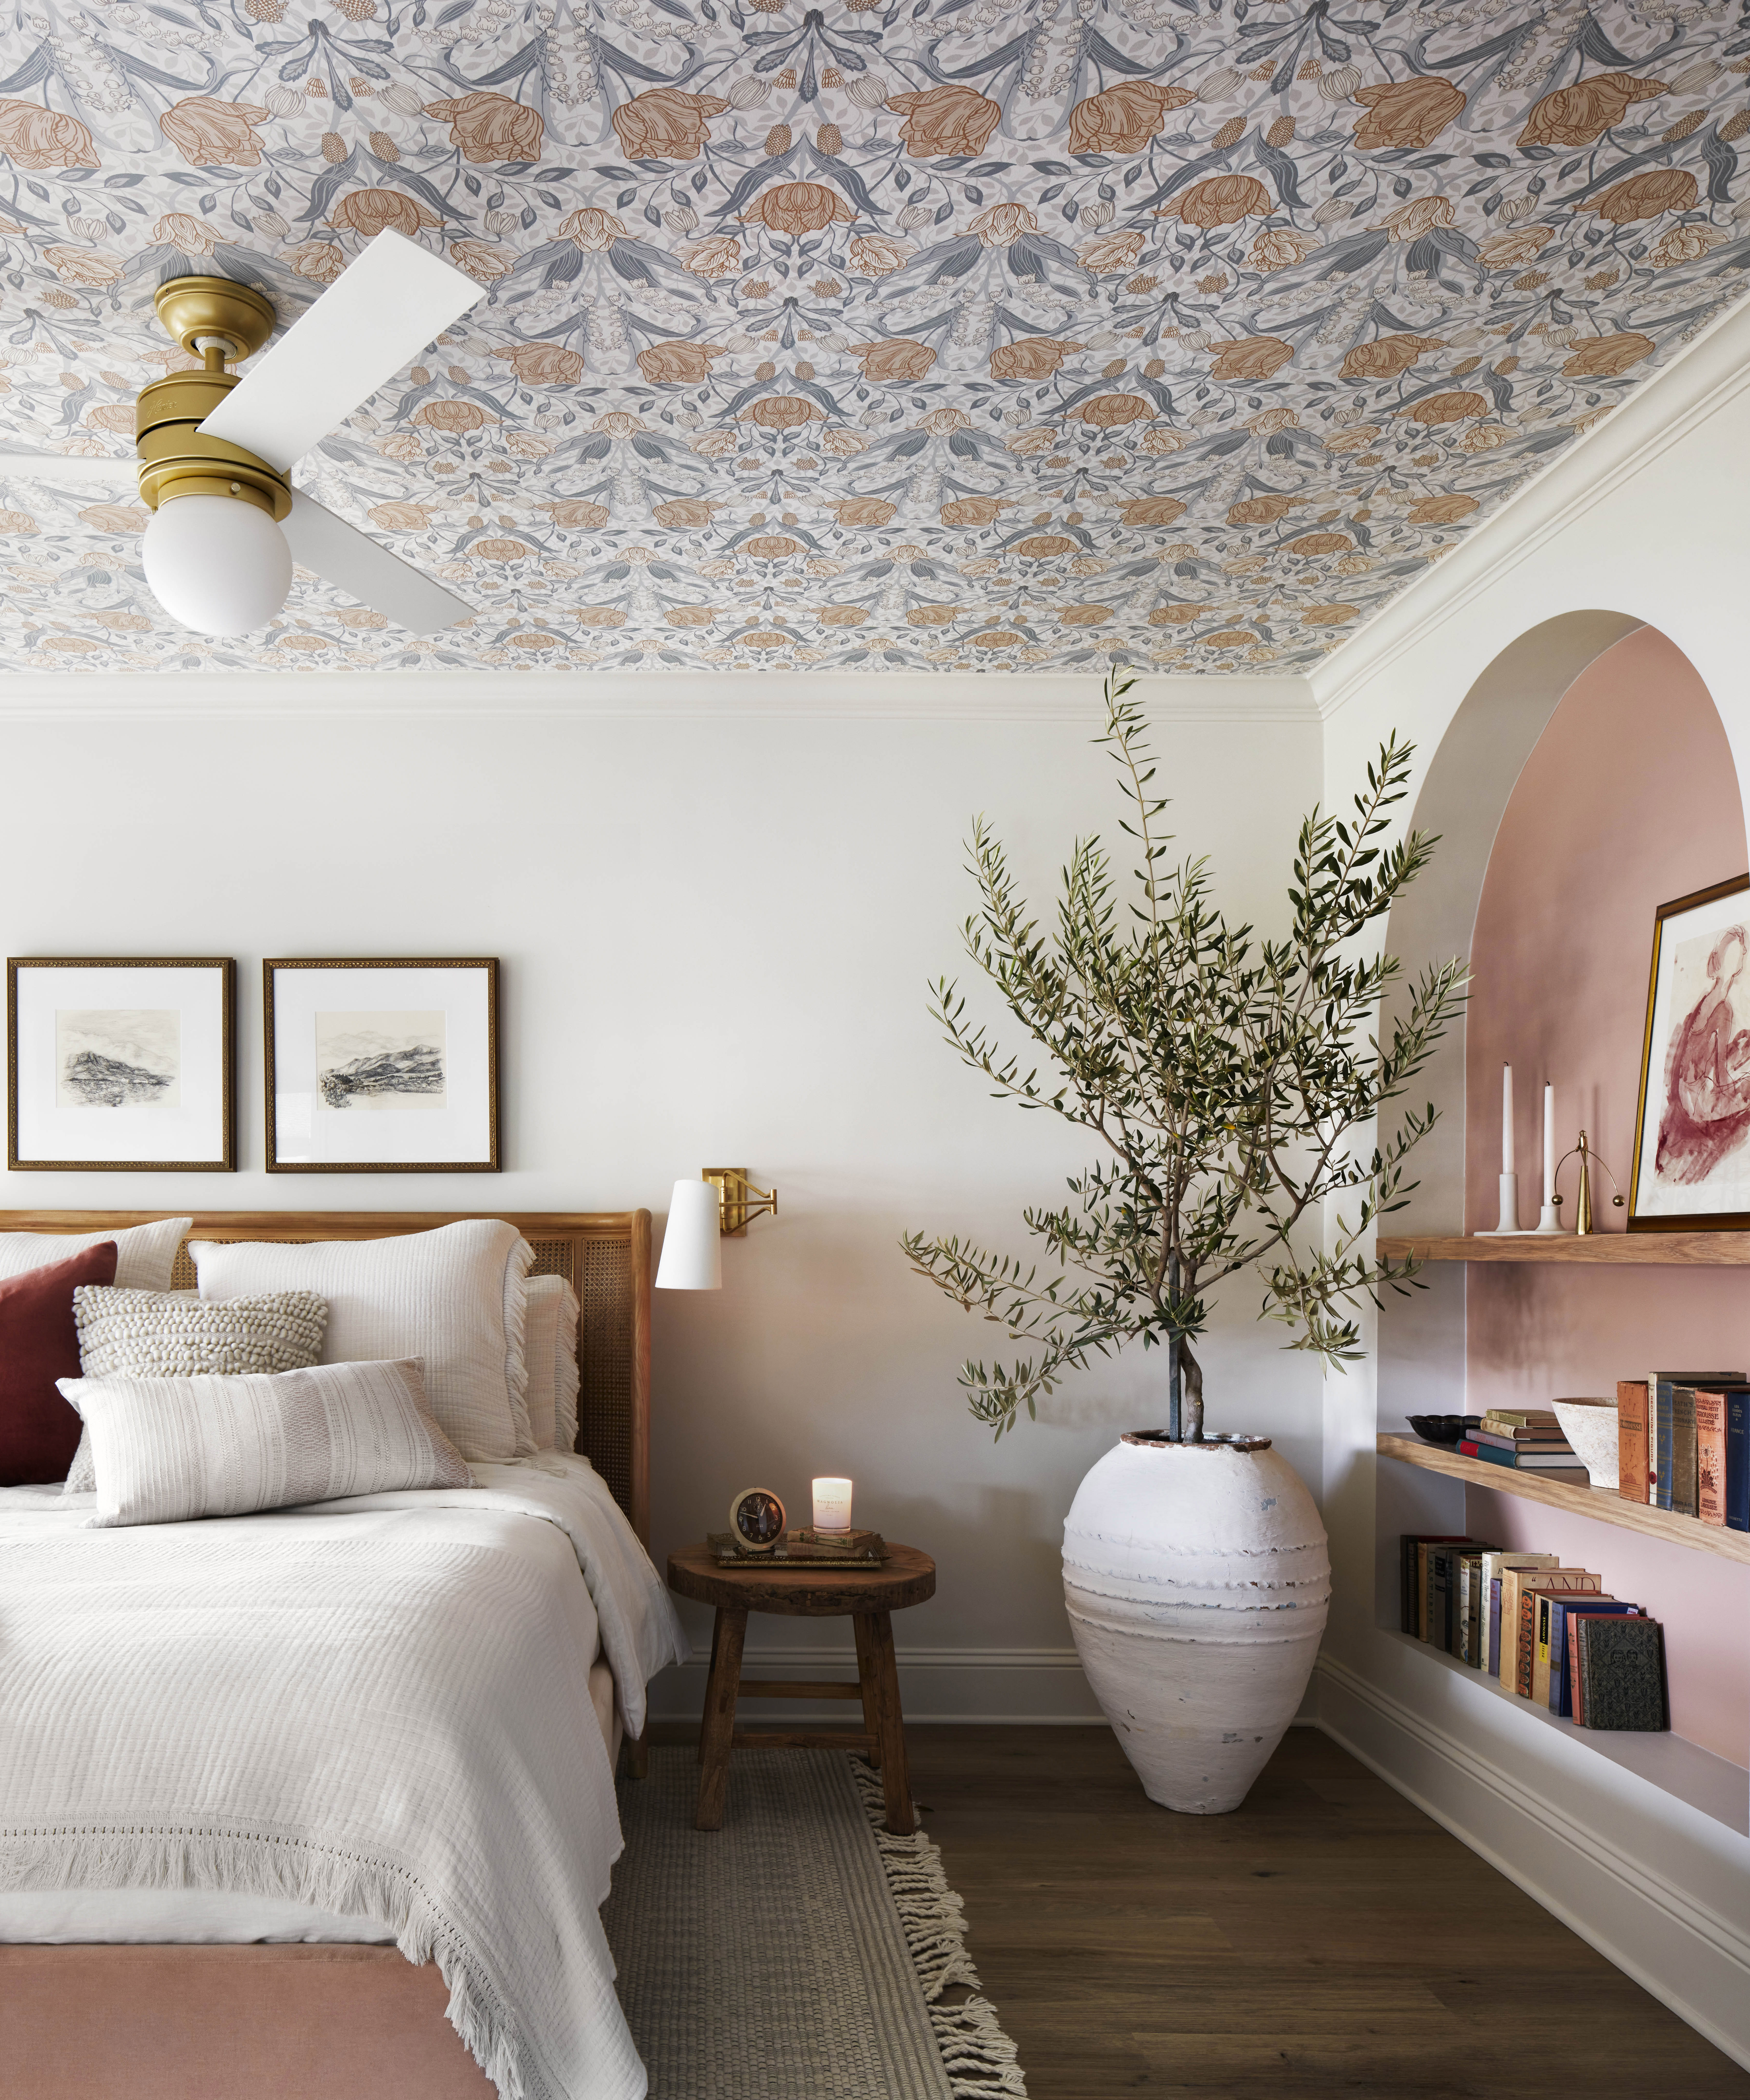 Joanna Gaines ceiling wallpaper this idea is trend setting 6788x8146